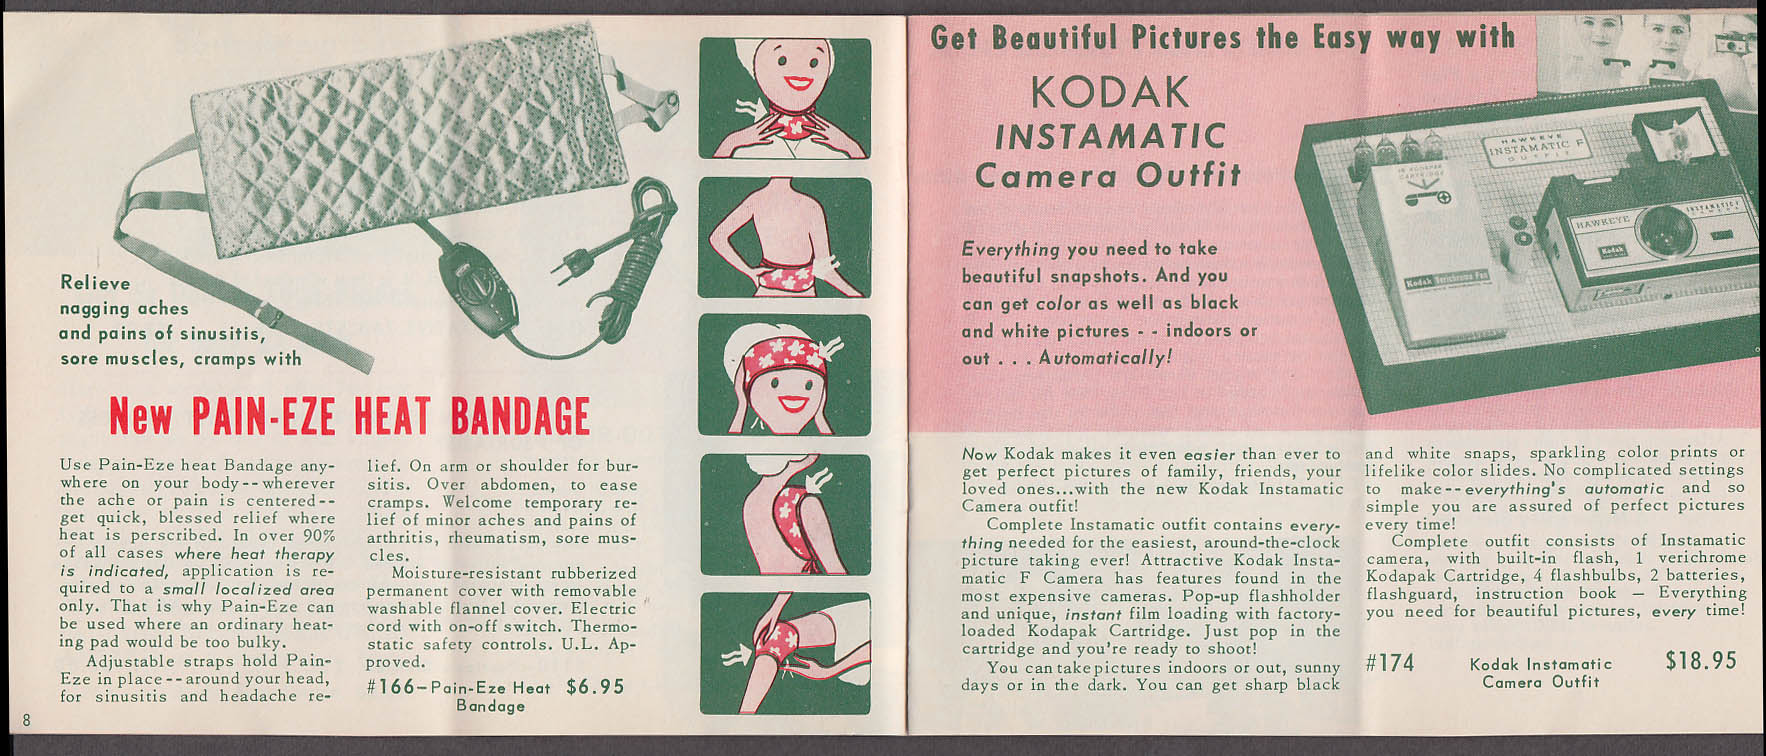 scs club christmas shopping mail order catalog 1960s camera health gadgets drugs - Christmas Mail Order Catalogs